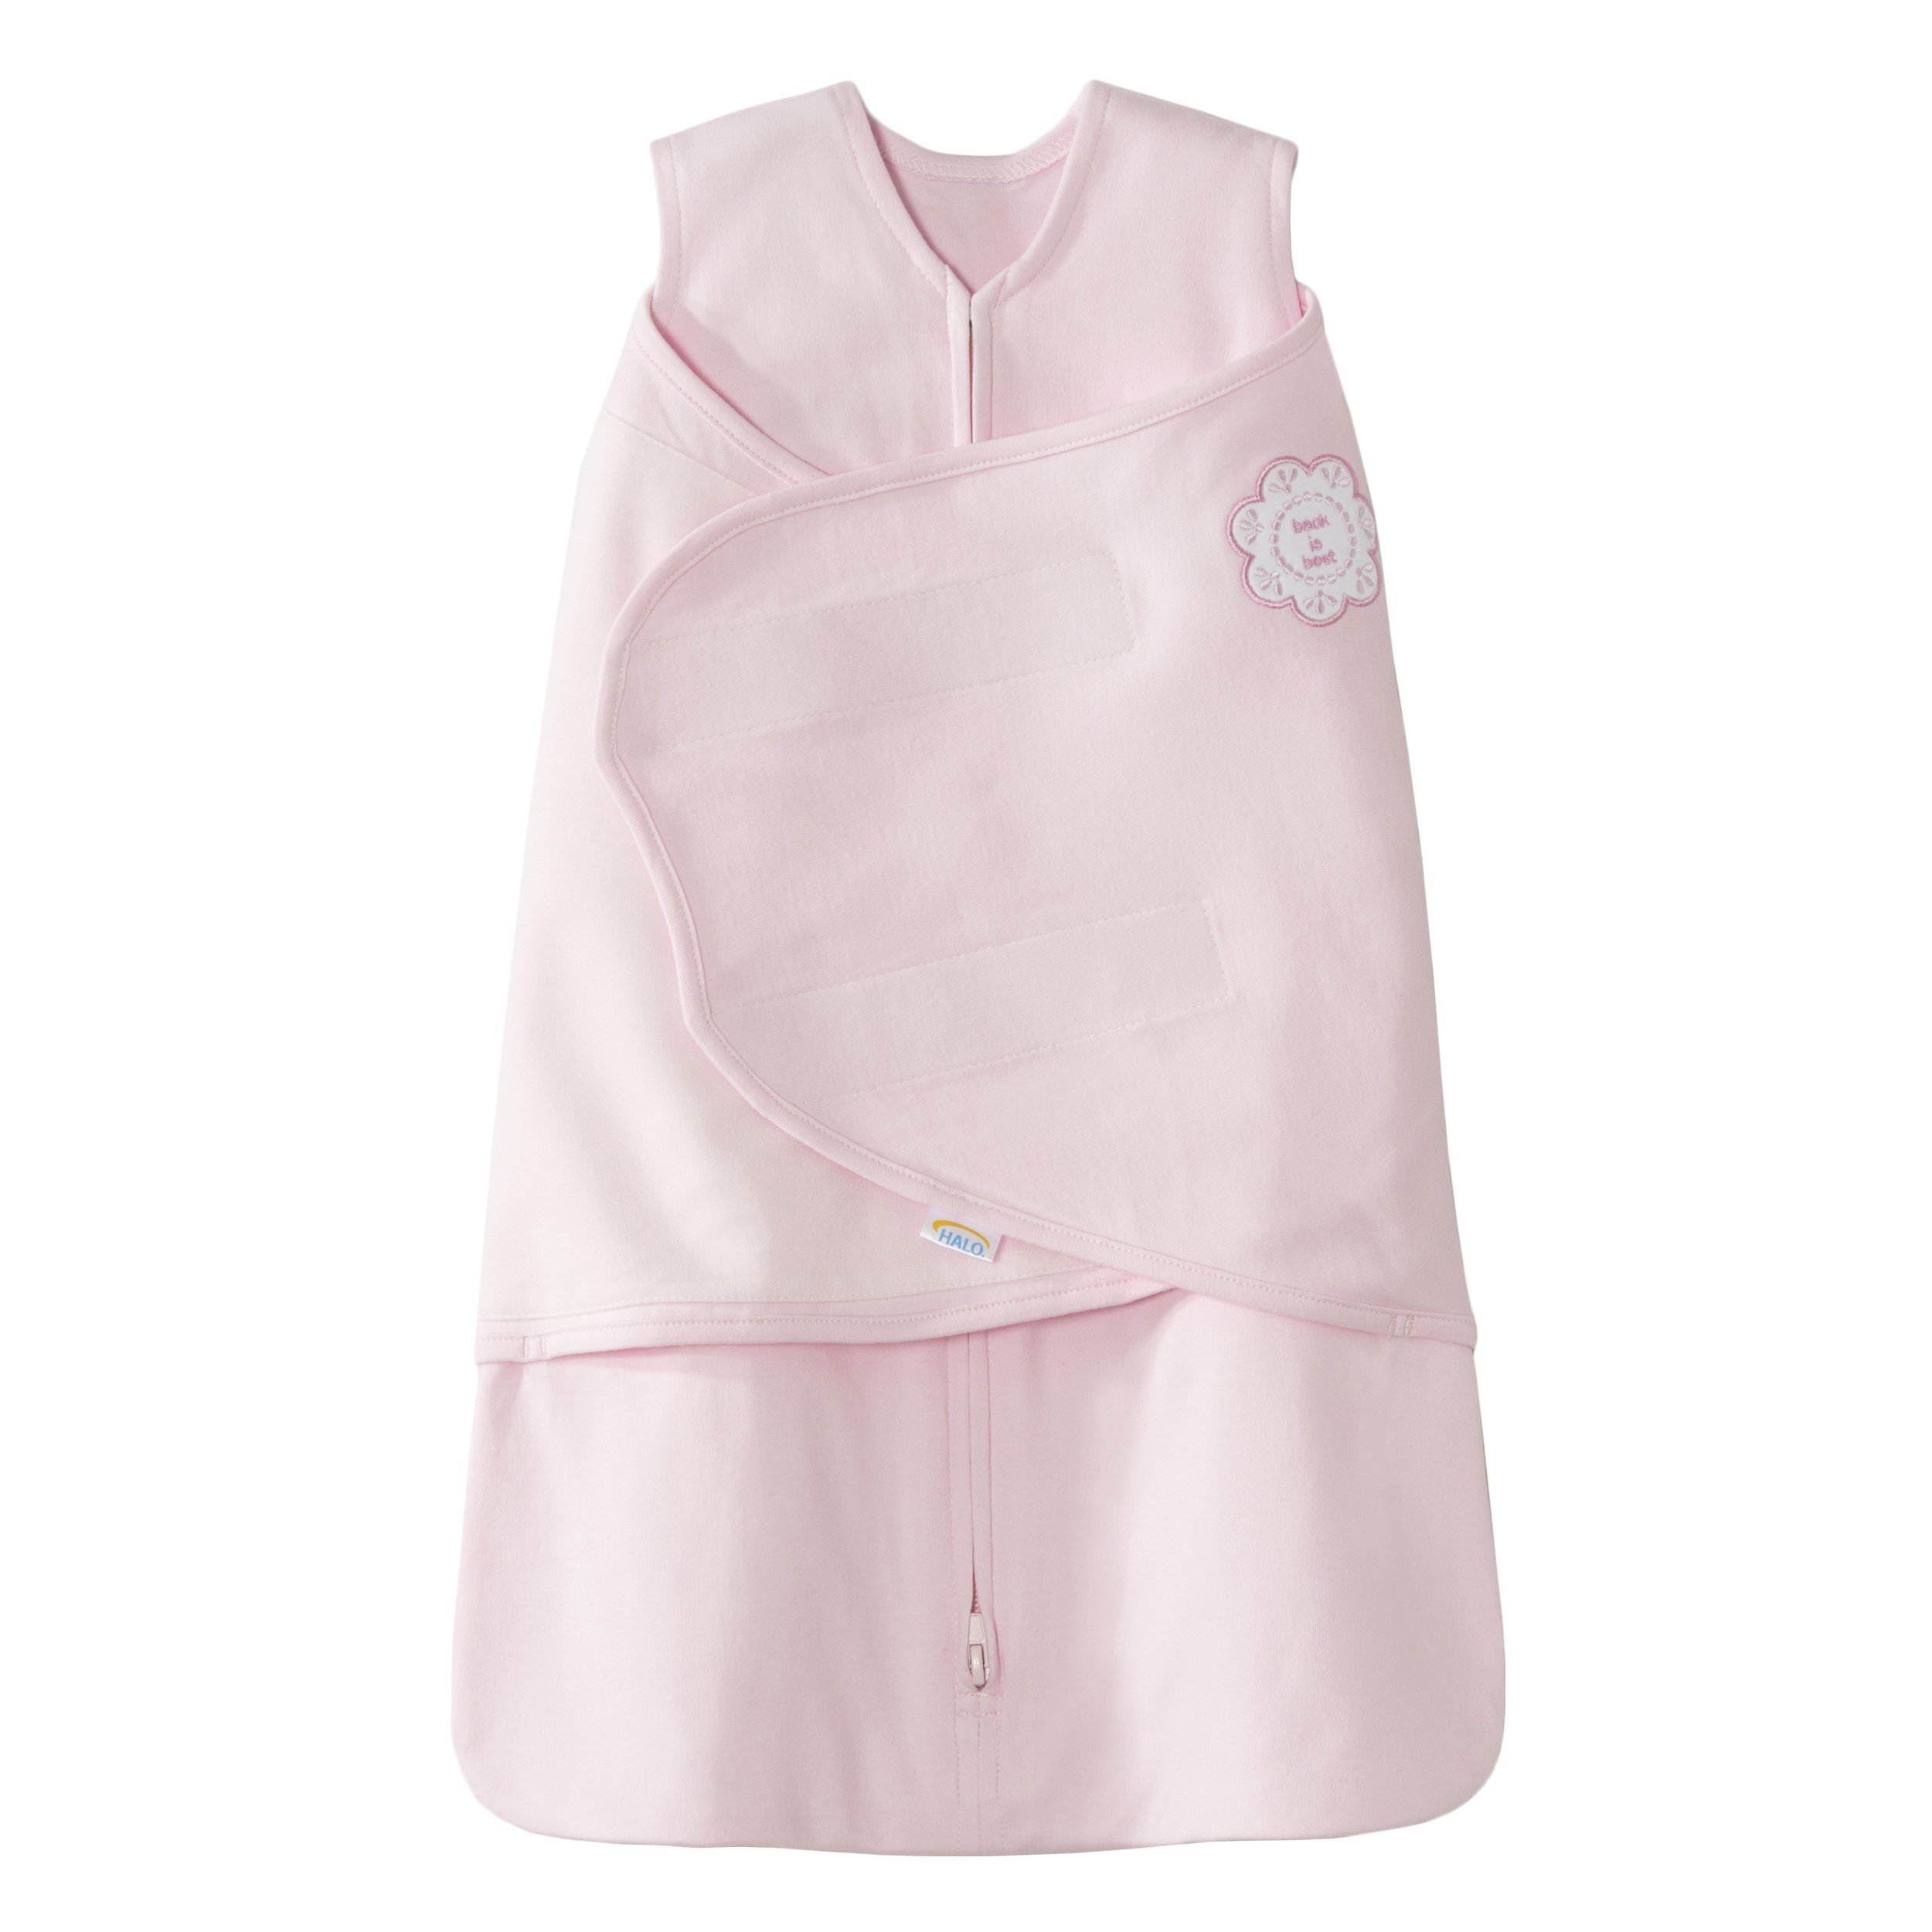 HALO SleepSack 100% Cotton Swaddle and Wearable Blanket Gift Set, Pink Lacy Flower, 2 Piece, Newborn/Small